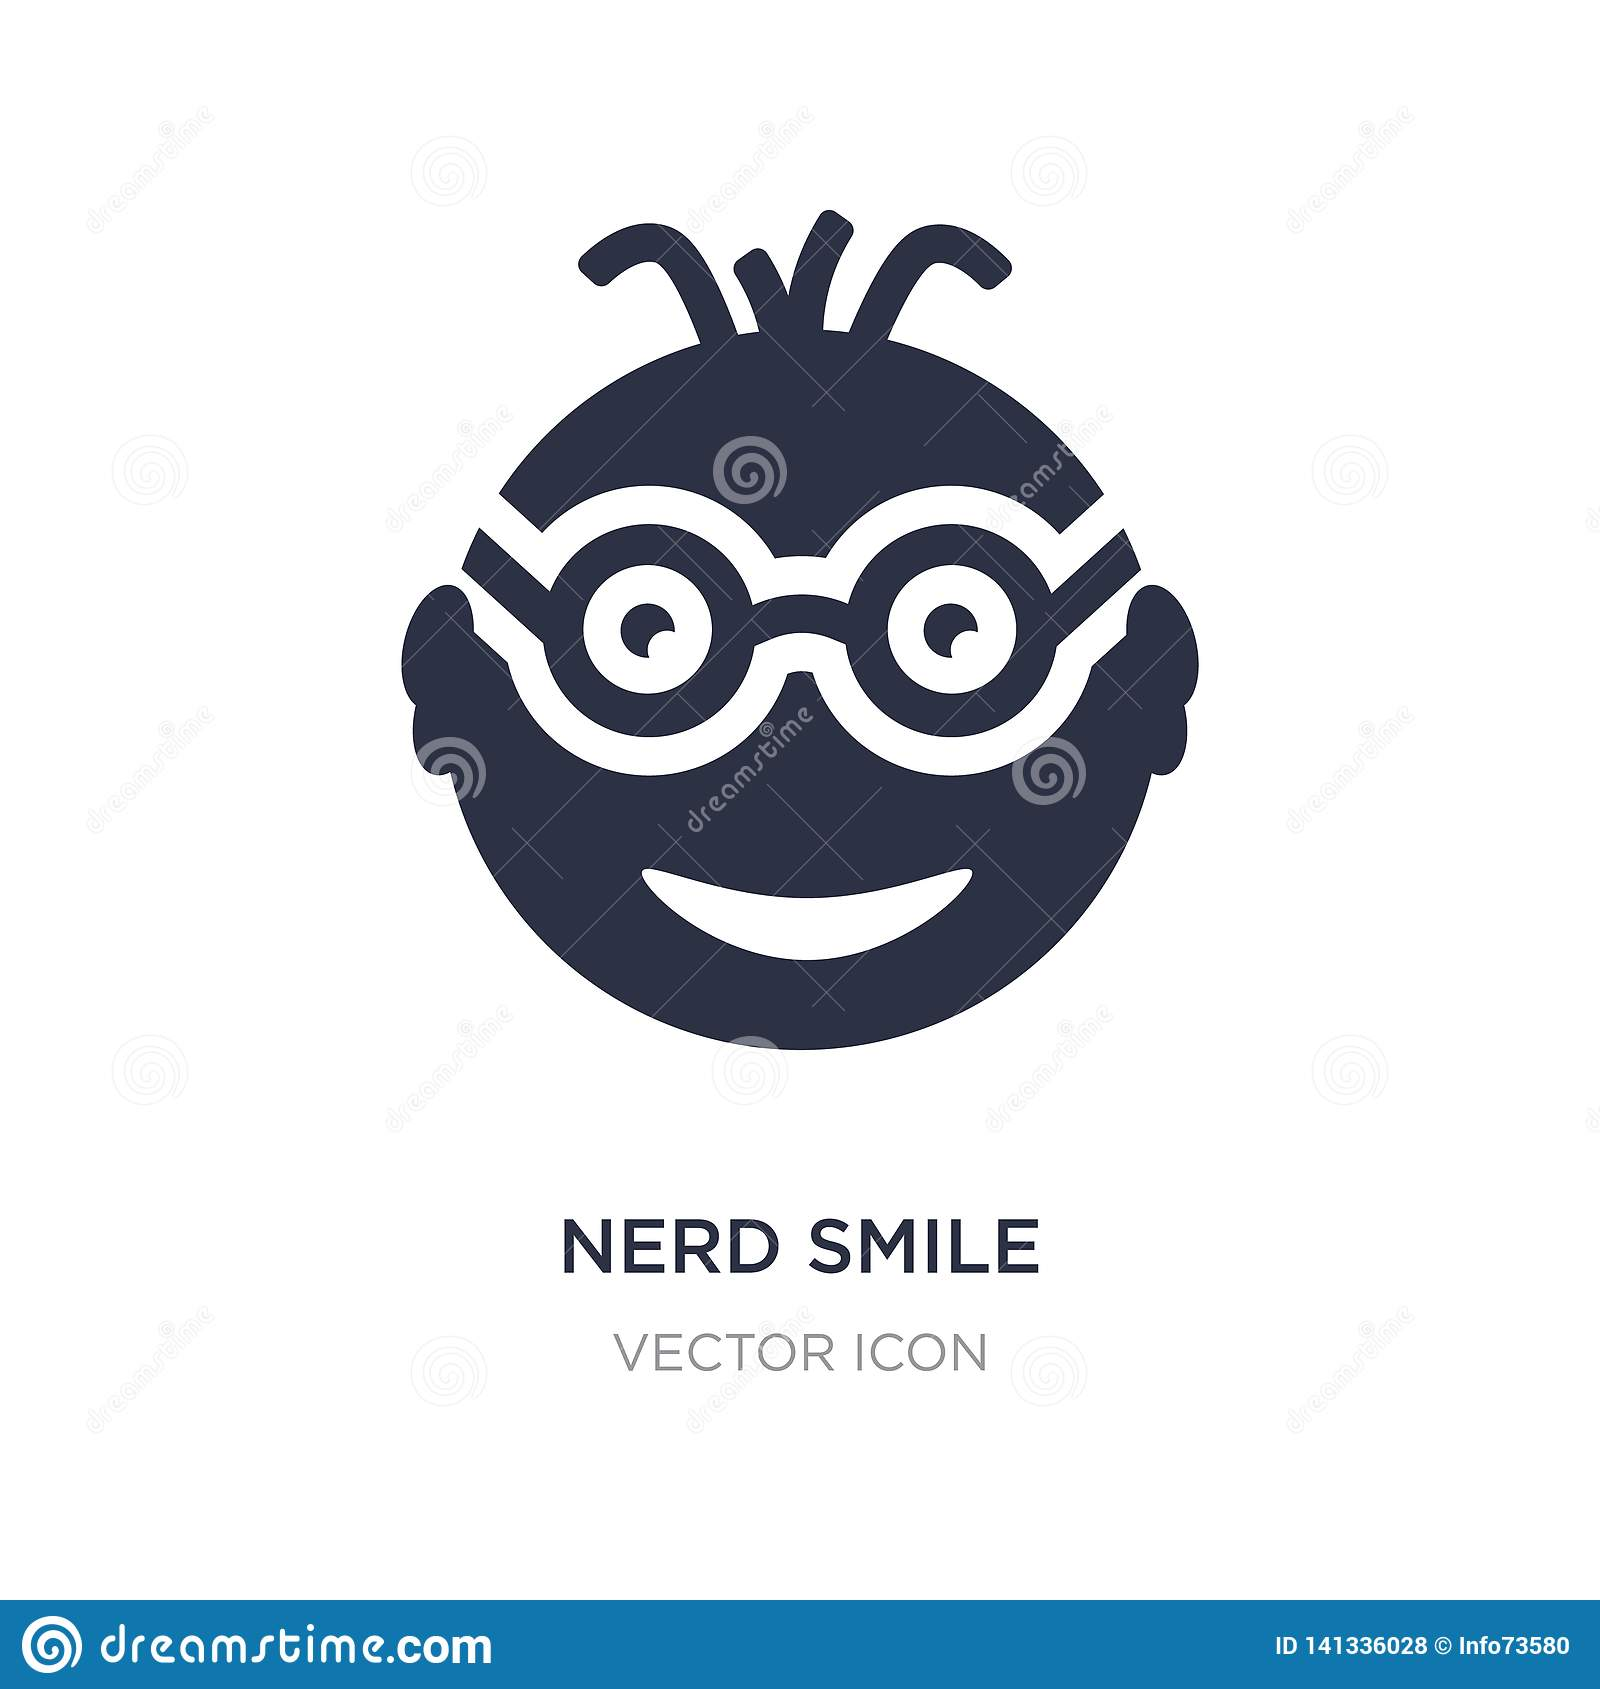 nerd smile icon on white background. Simple element illustration from UI concept